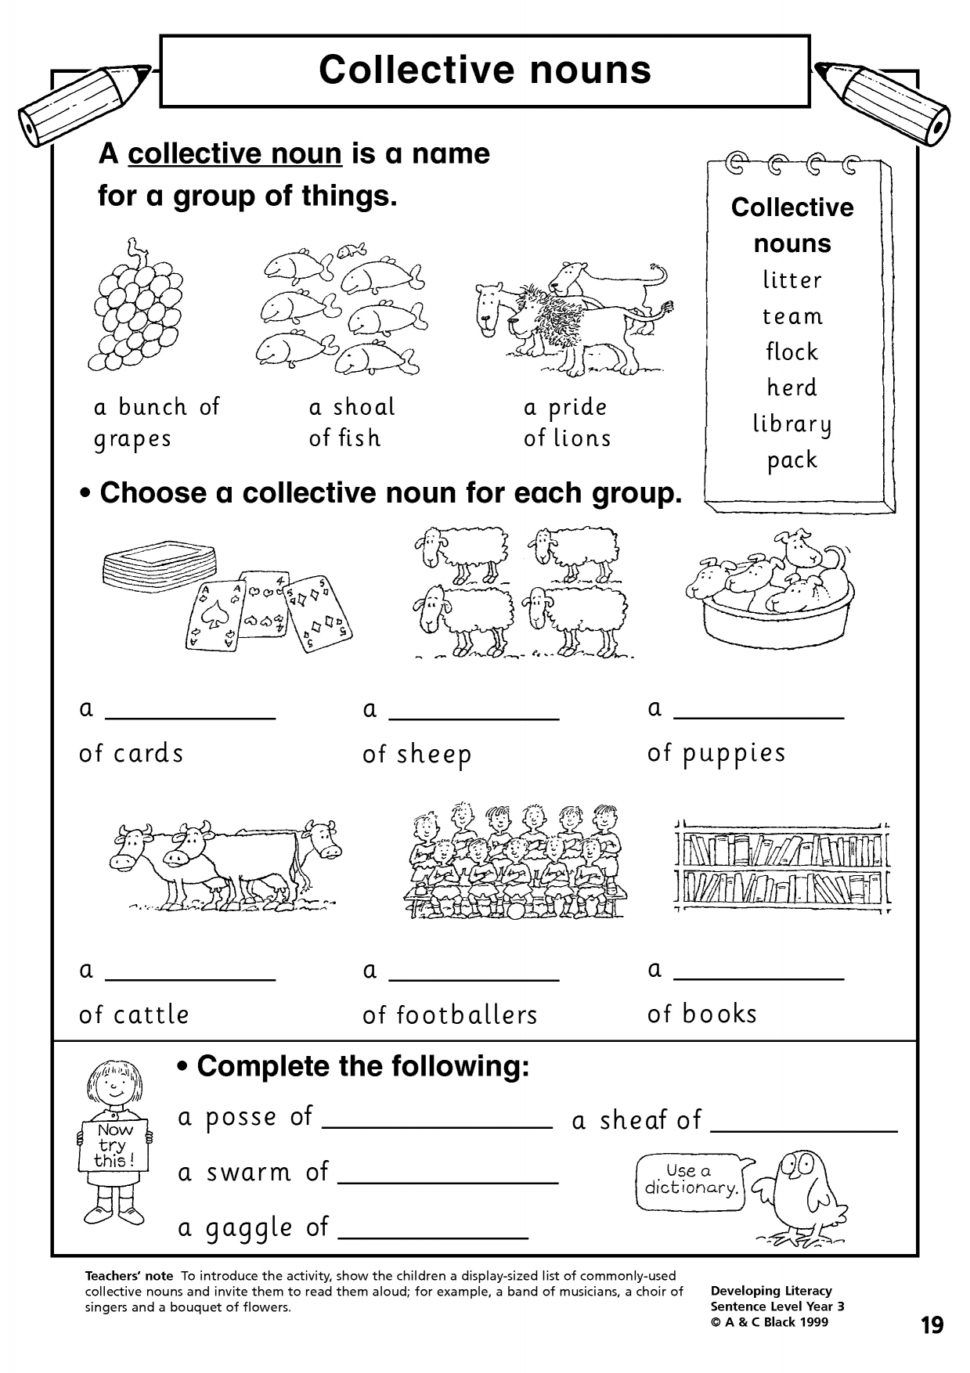 Nouns Worksheets For Grade 2 Collective Nouns Worksheet Nouns Worksheet 2nd Grade Worksheets [ 1373 x 970 Pixel ]